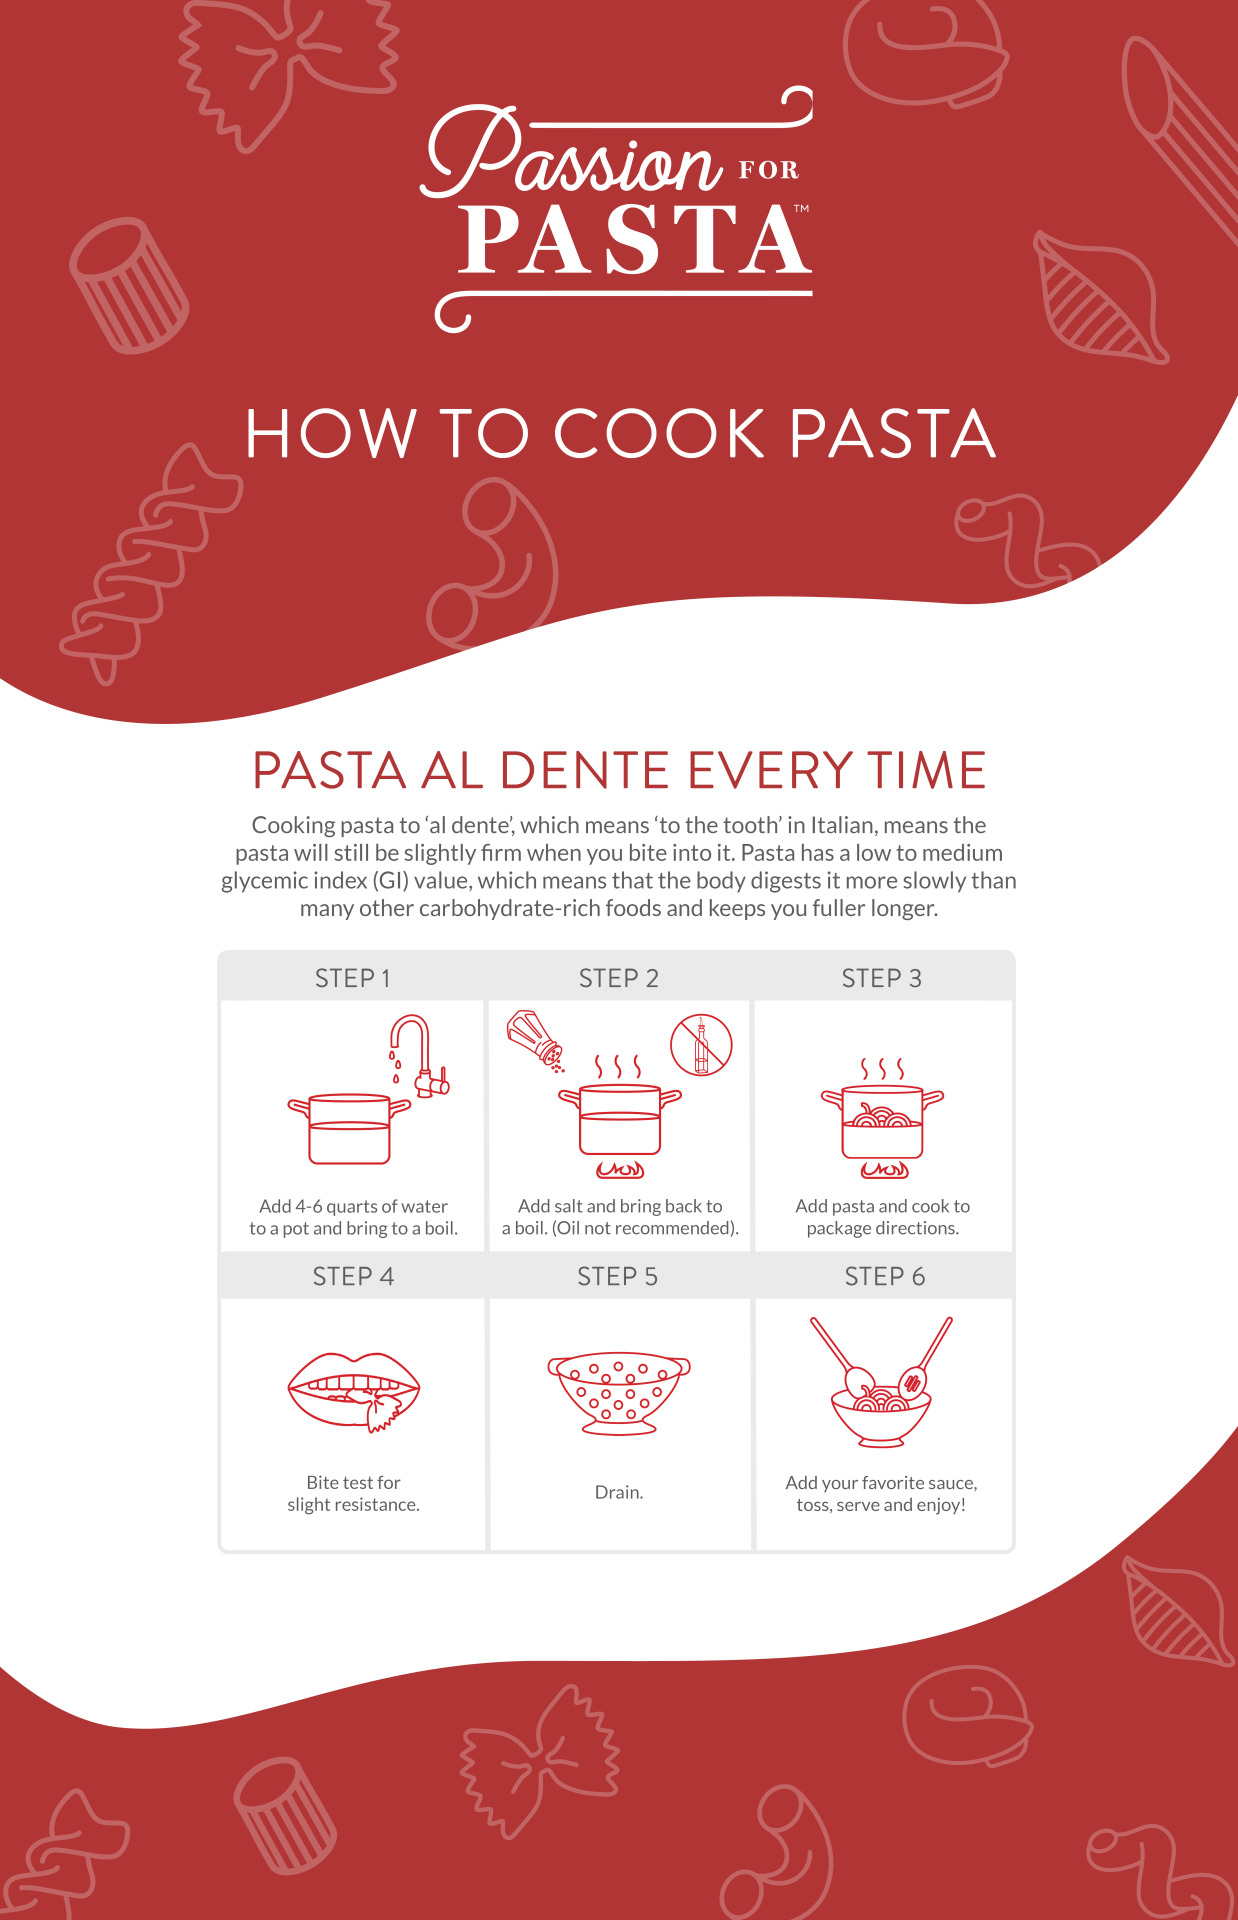 Passion for Pasta Infographic: How to Cook Pasta